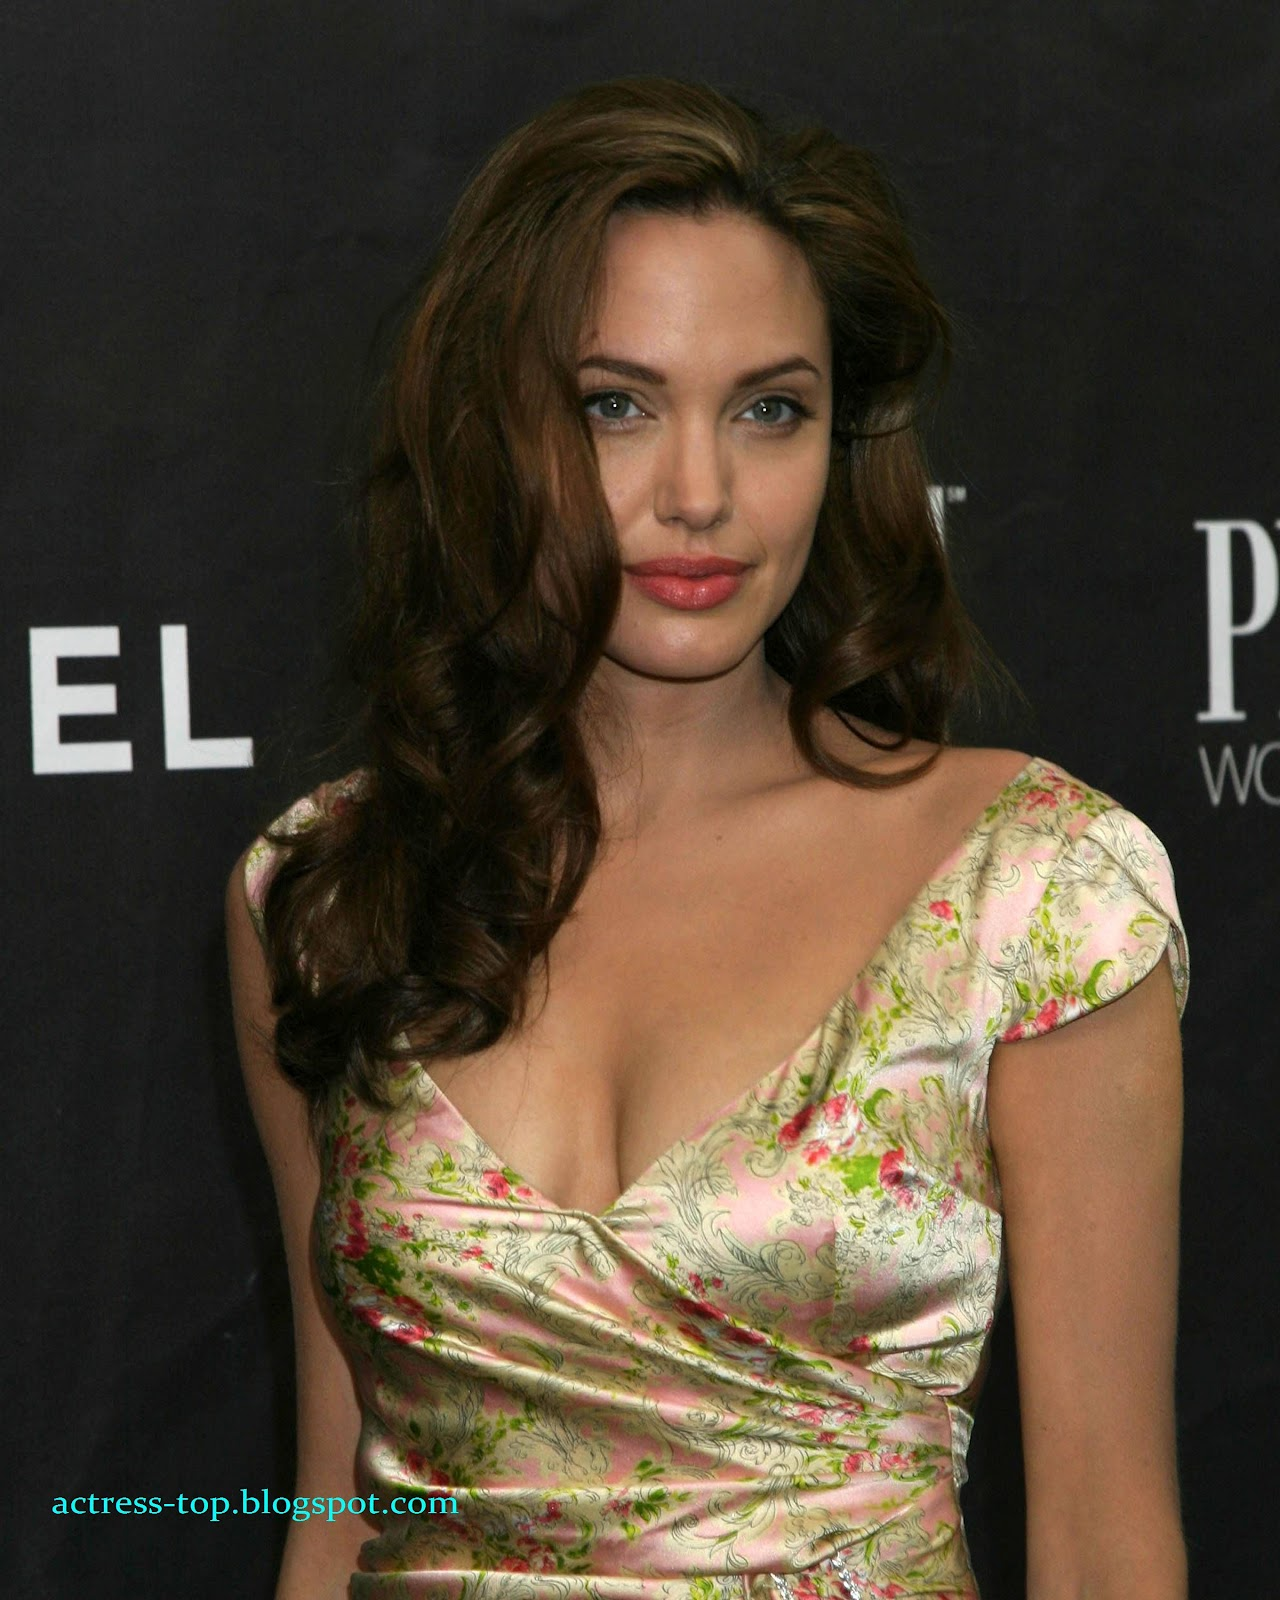 anjalina jolie xxx hot photo